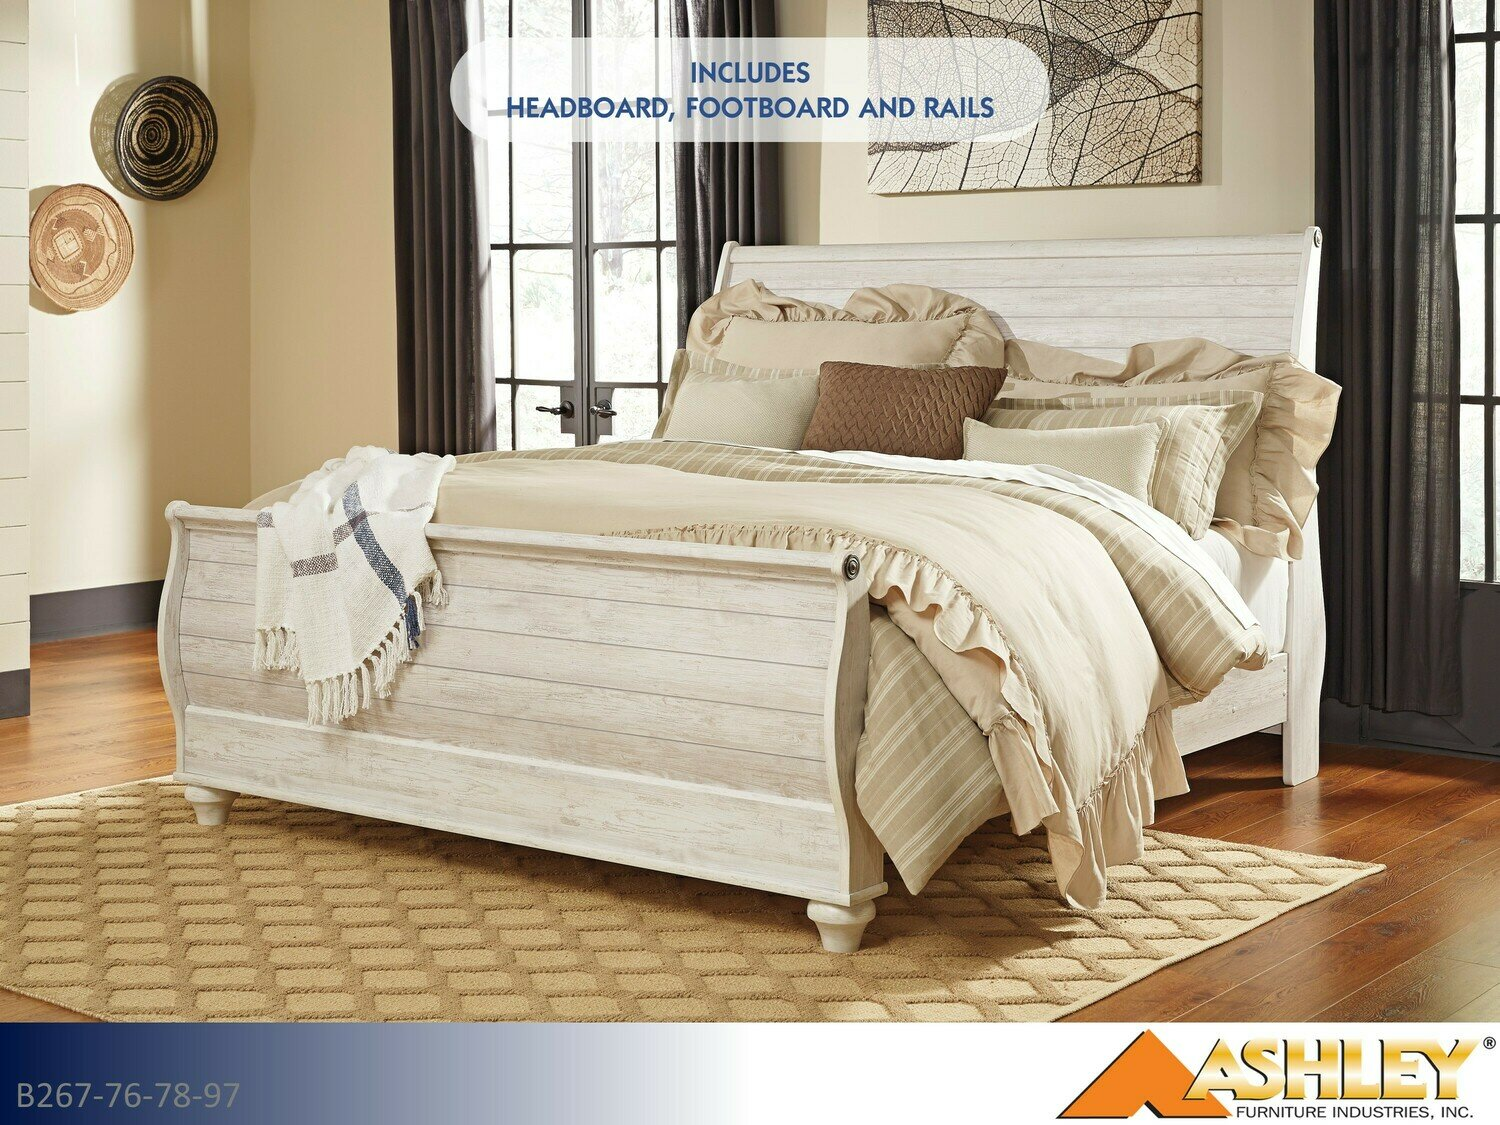 Willowton Whitewash Bed with Headboard Footboard Rails by Ashley (King)